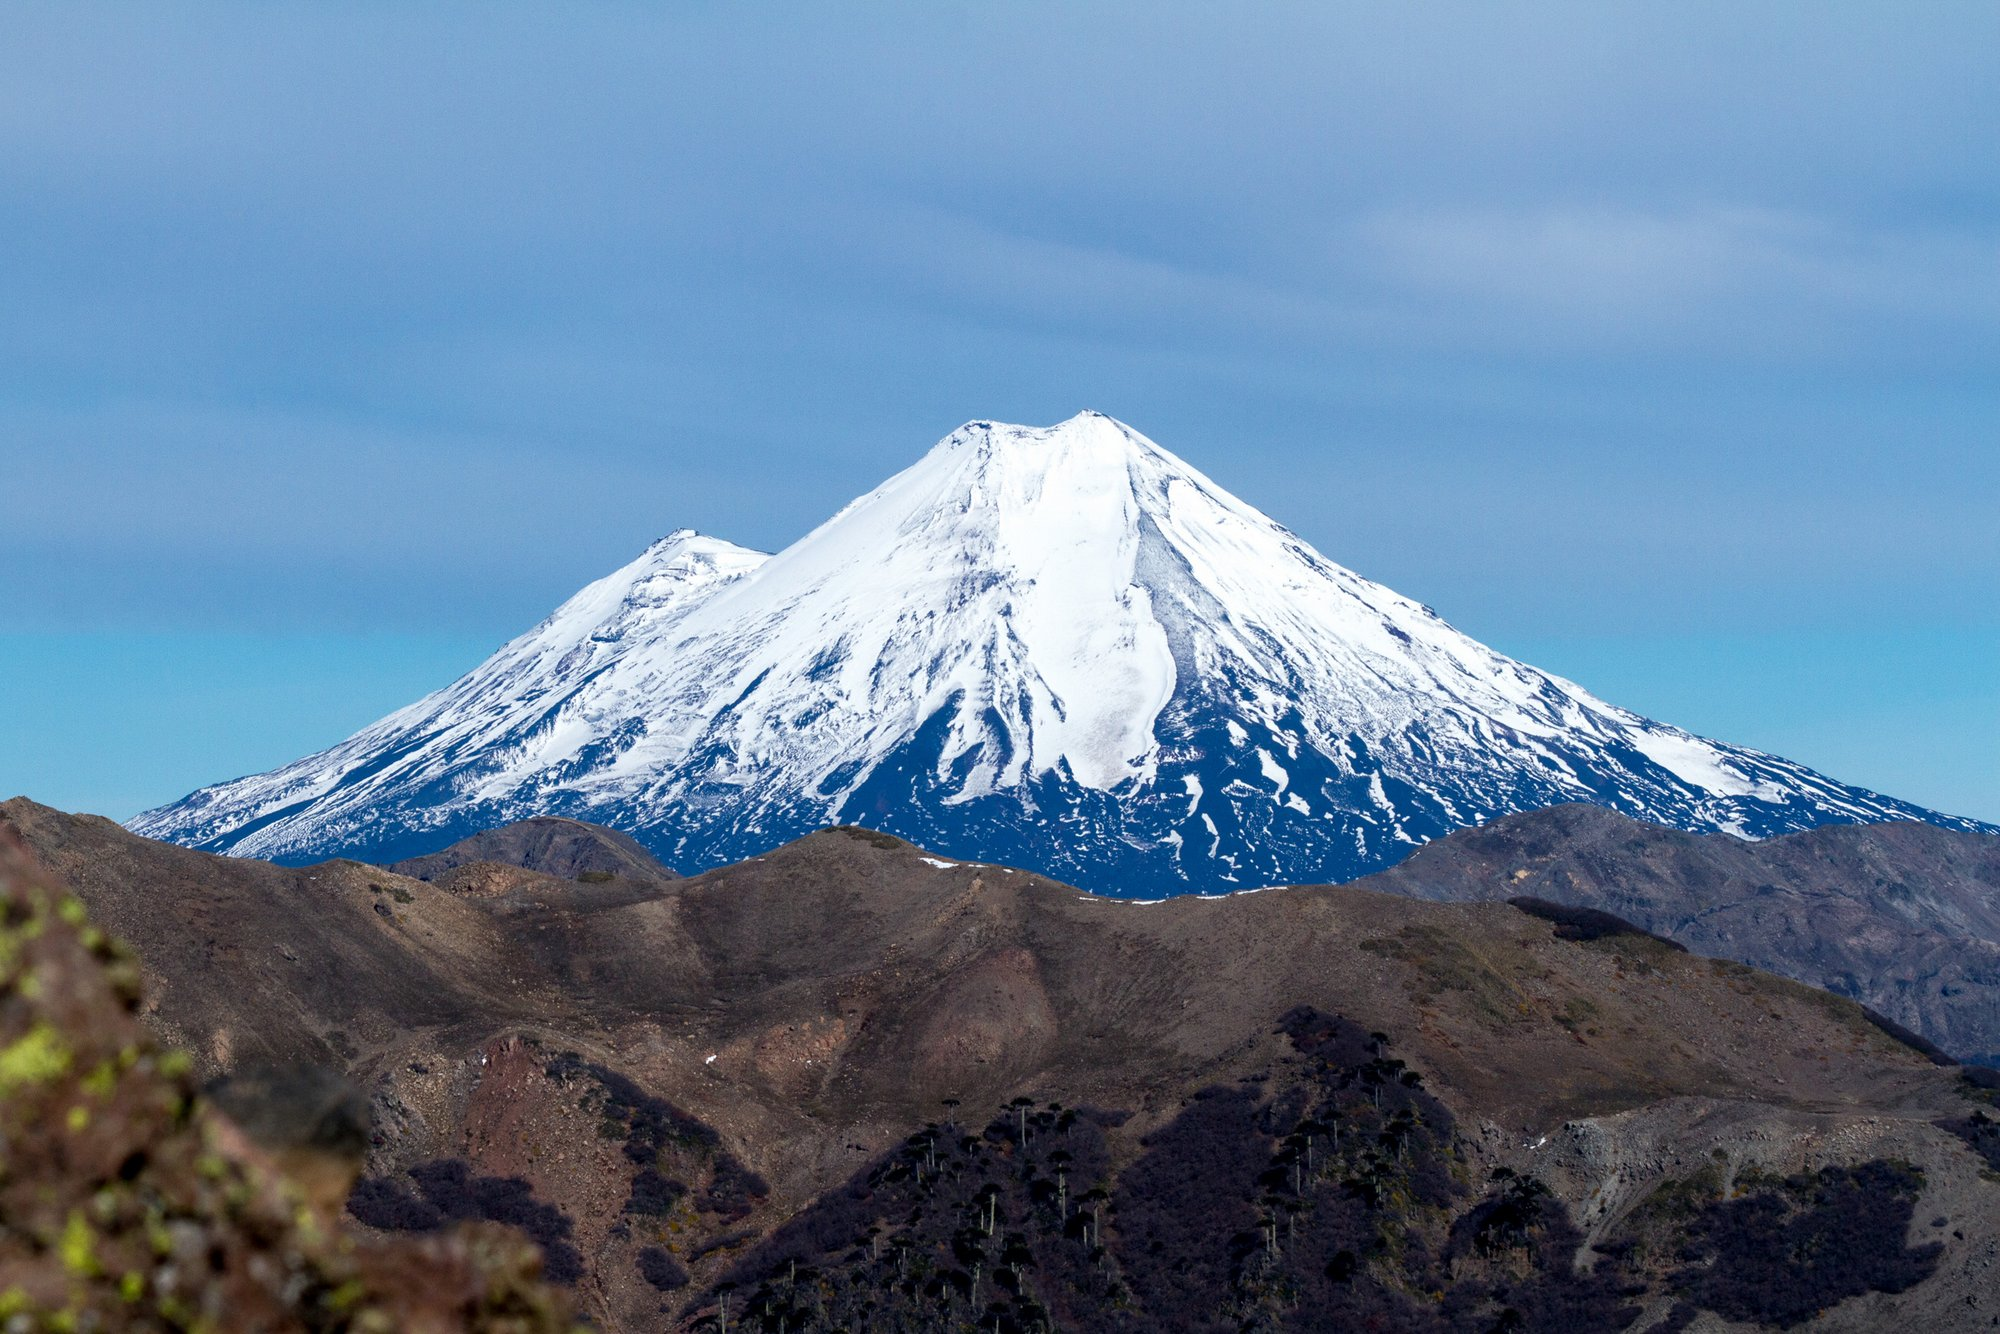 Andes Mountains Chile Ski Holidays Chile Wild - Where are the andes mountains